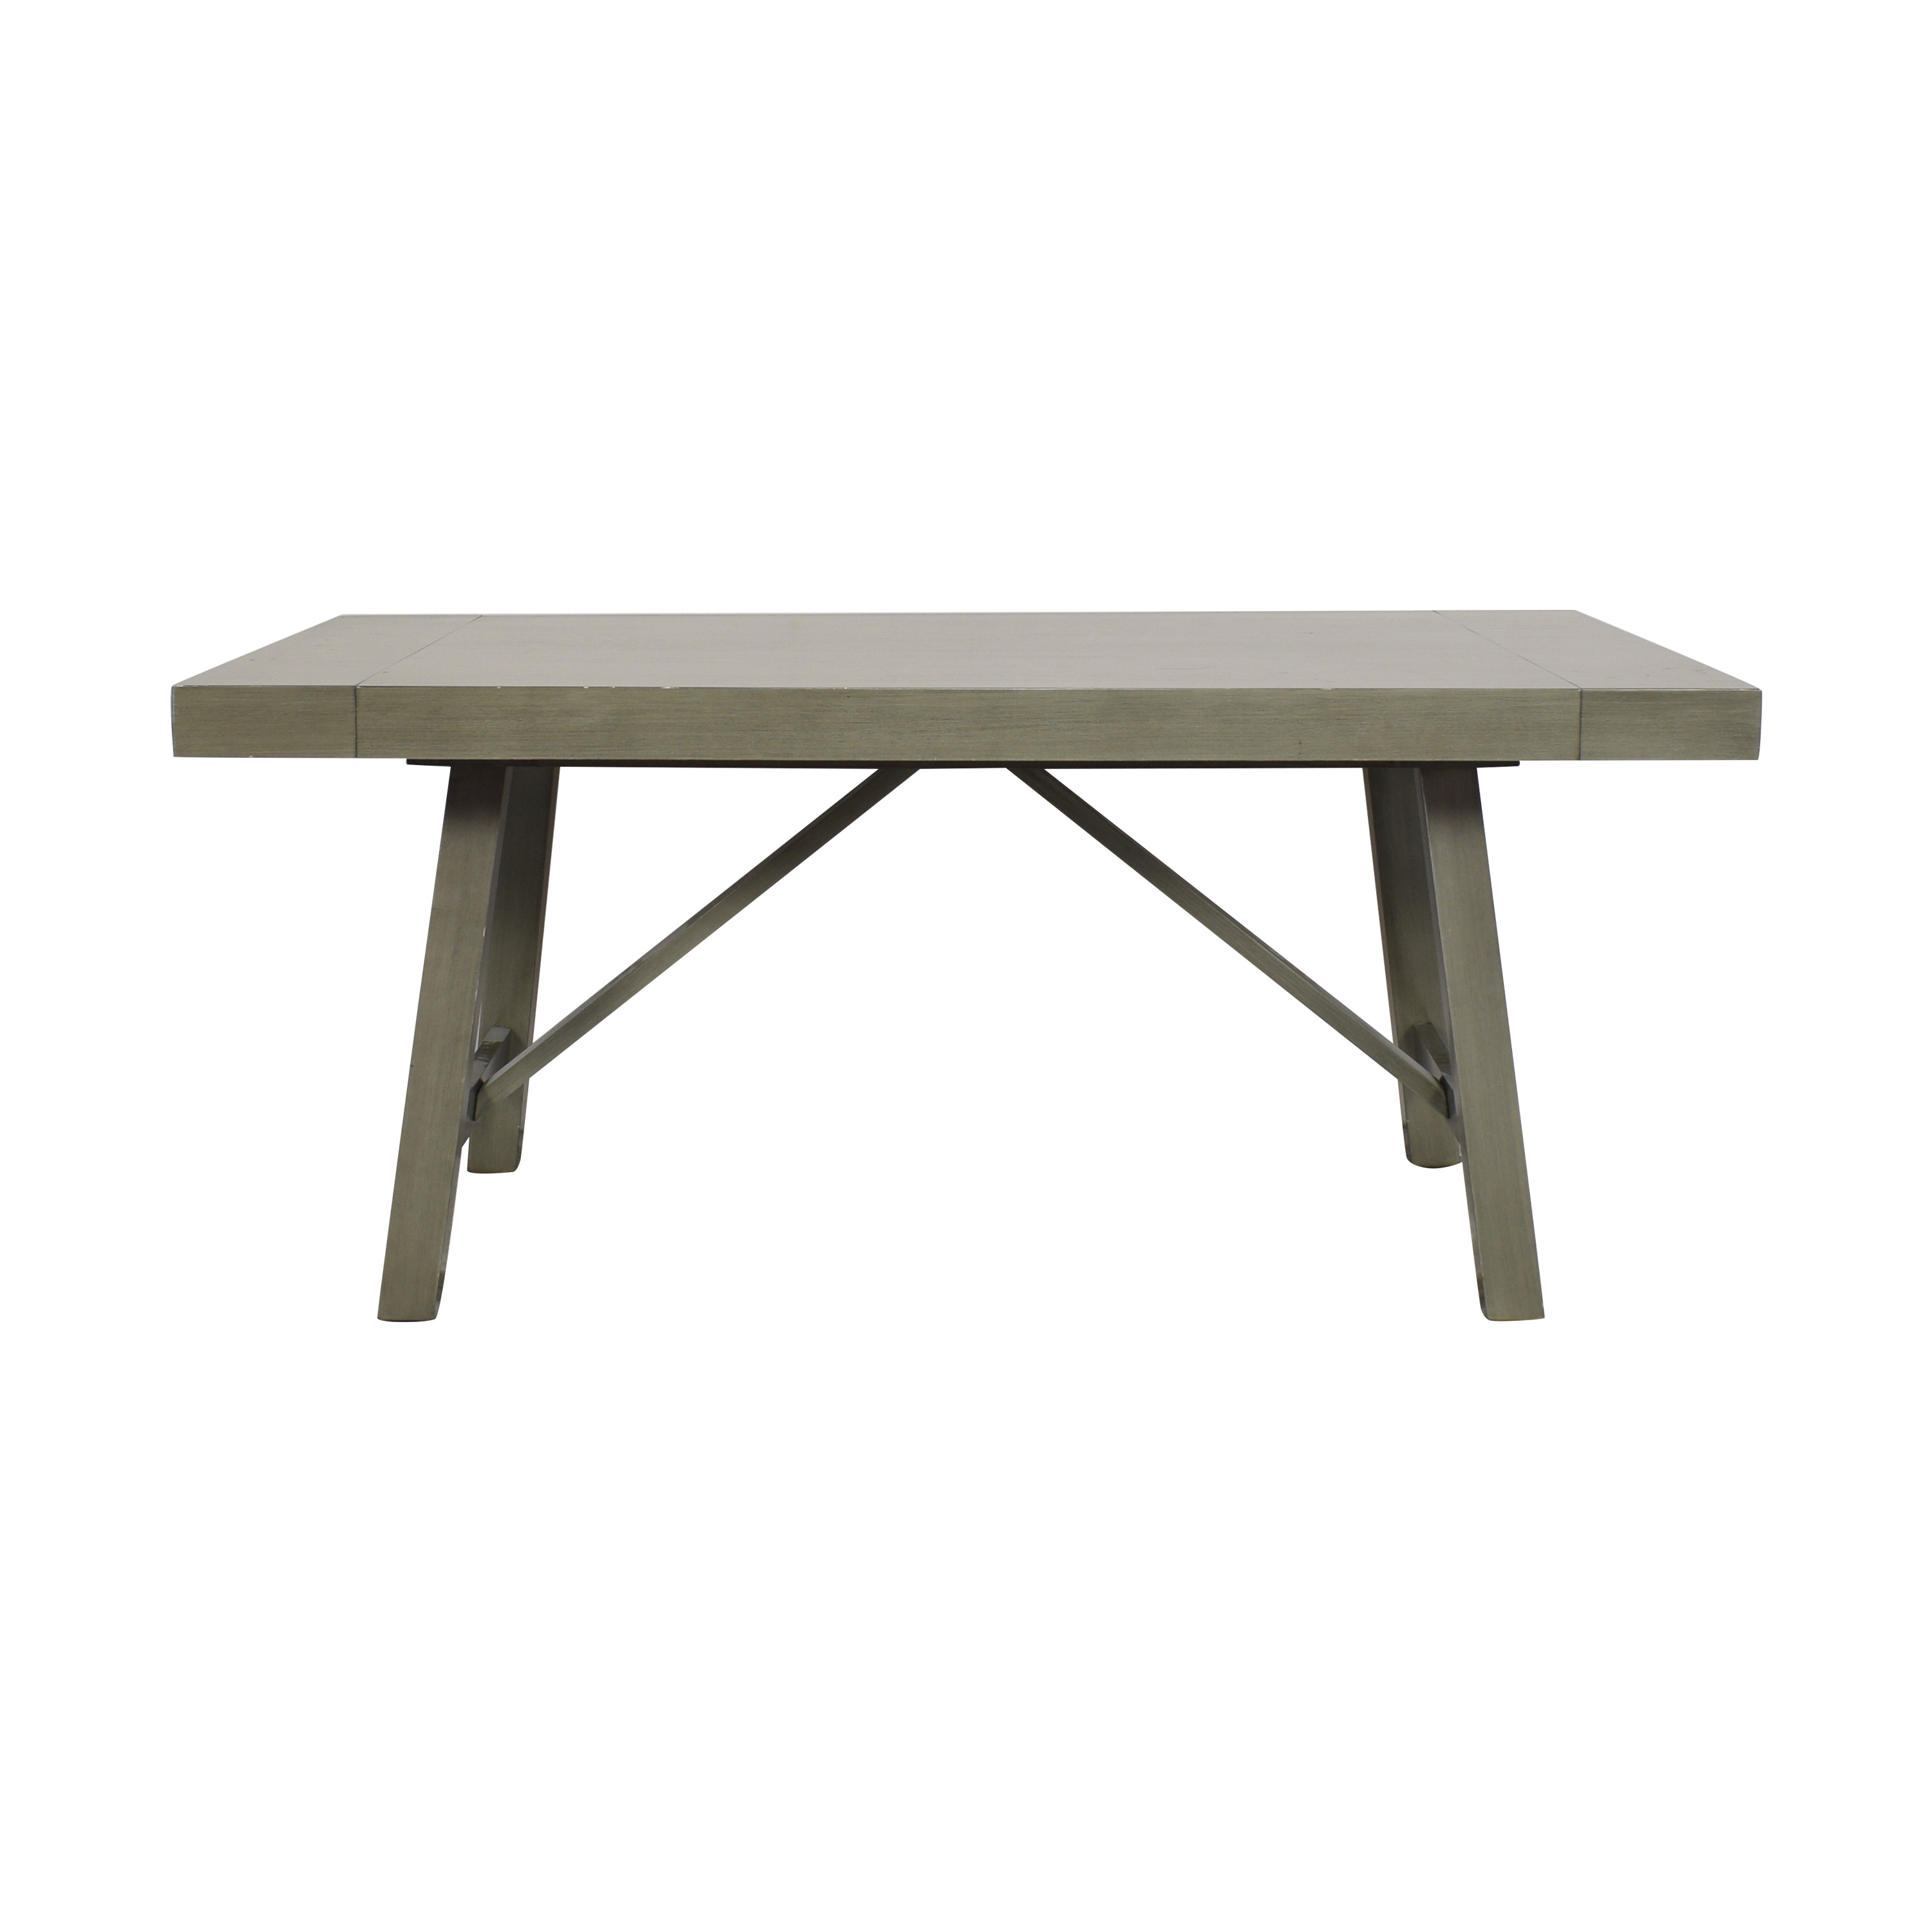 Standard Furniture Standard Furniture Omaha Extendable Trestle Dining Table gray